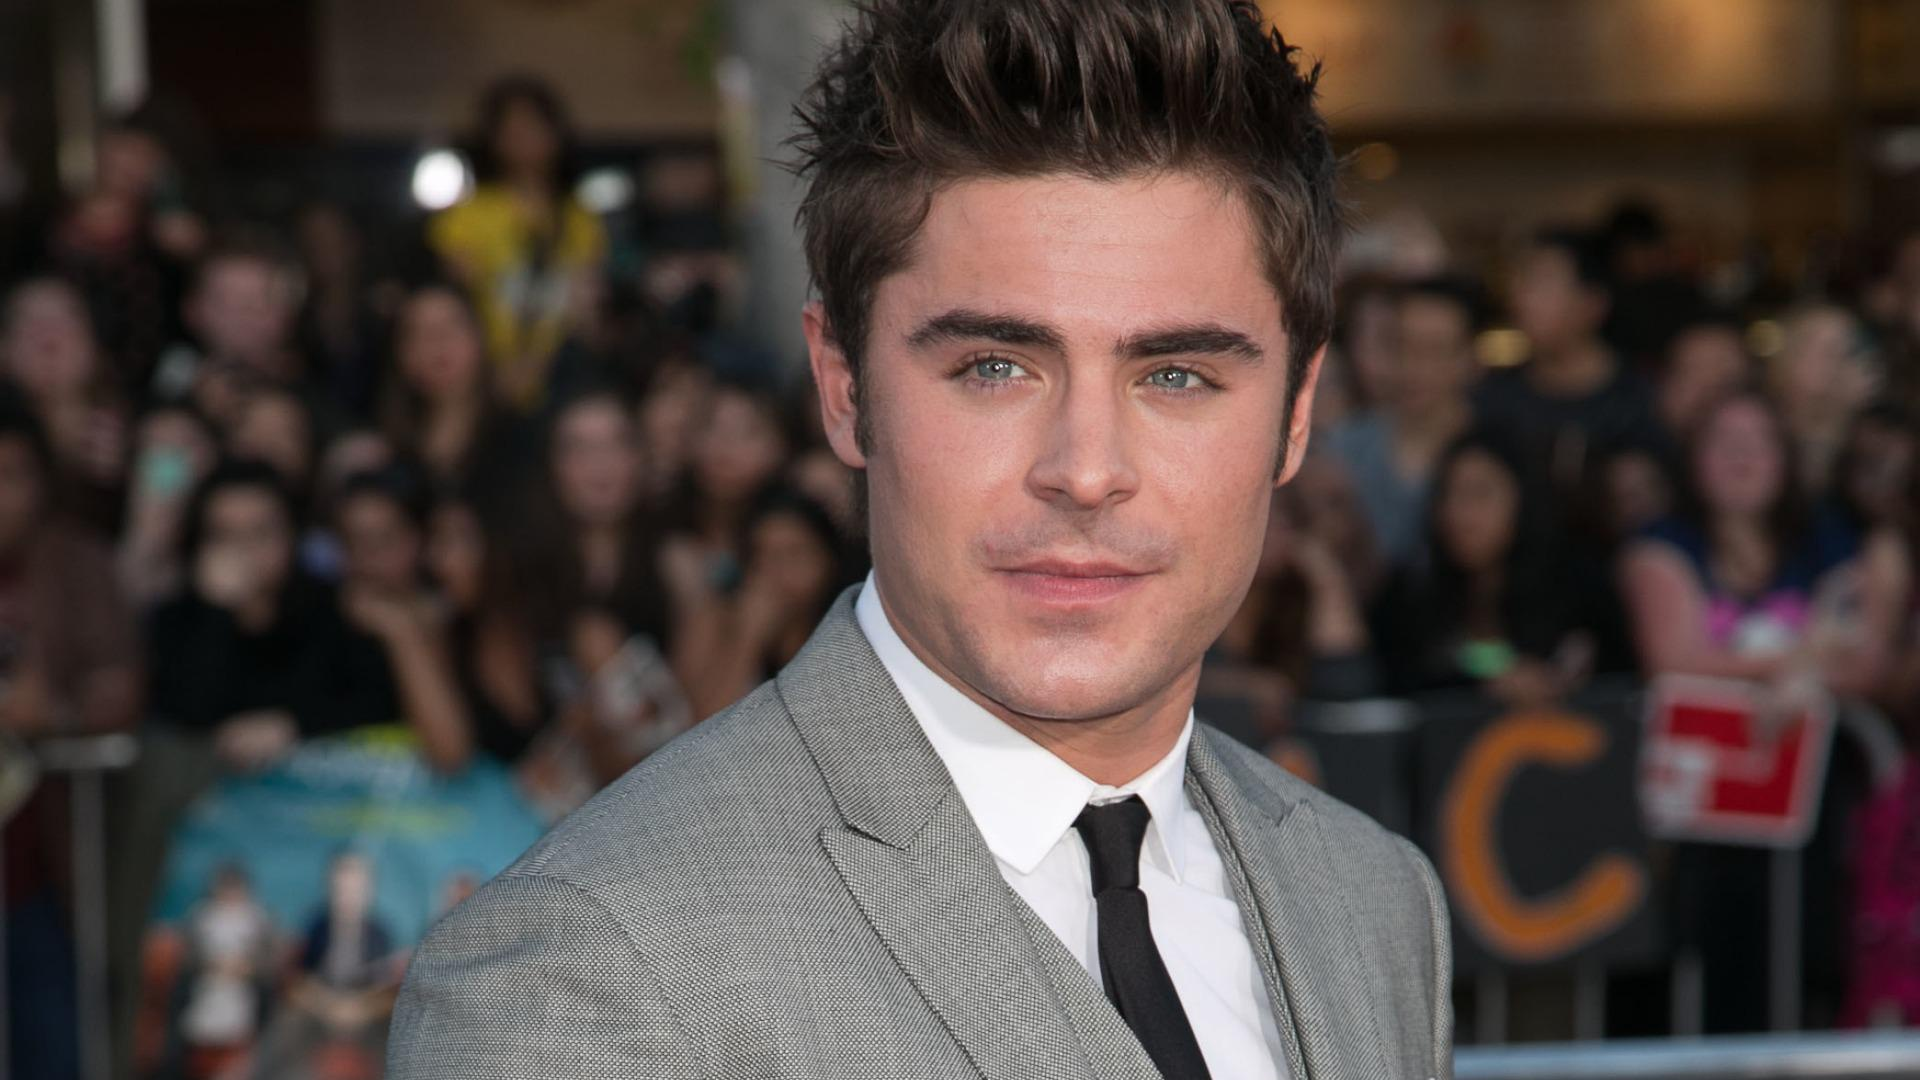 Zac Efron and Michelle Rodriguez call time on summer fling